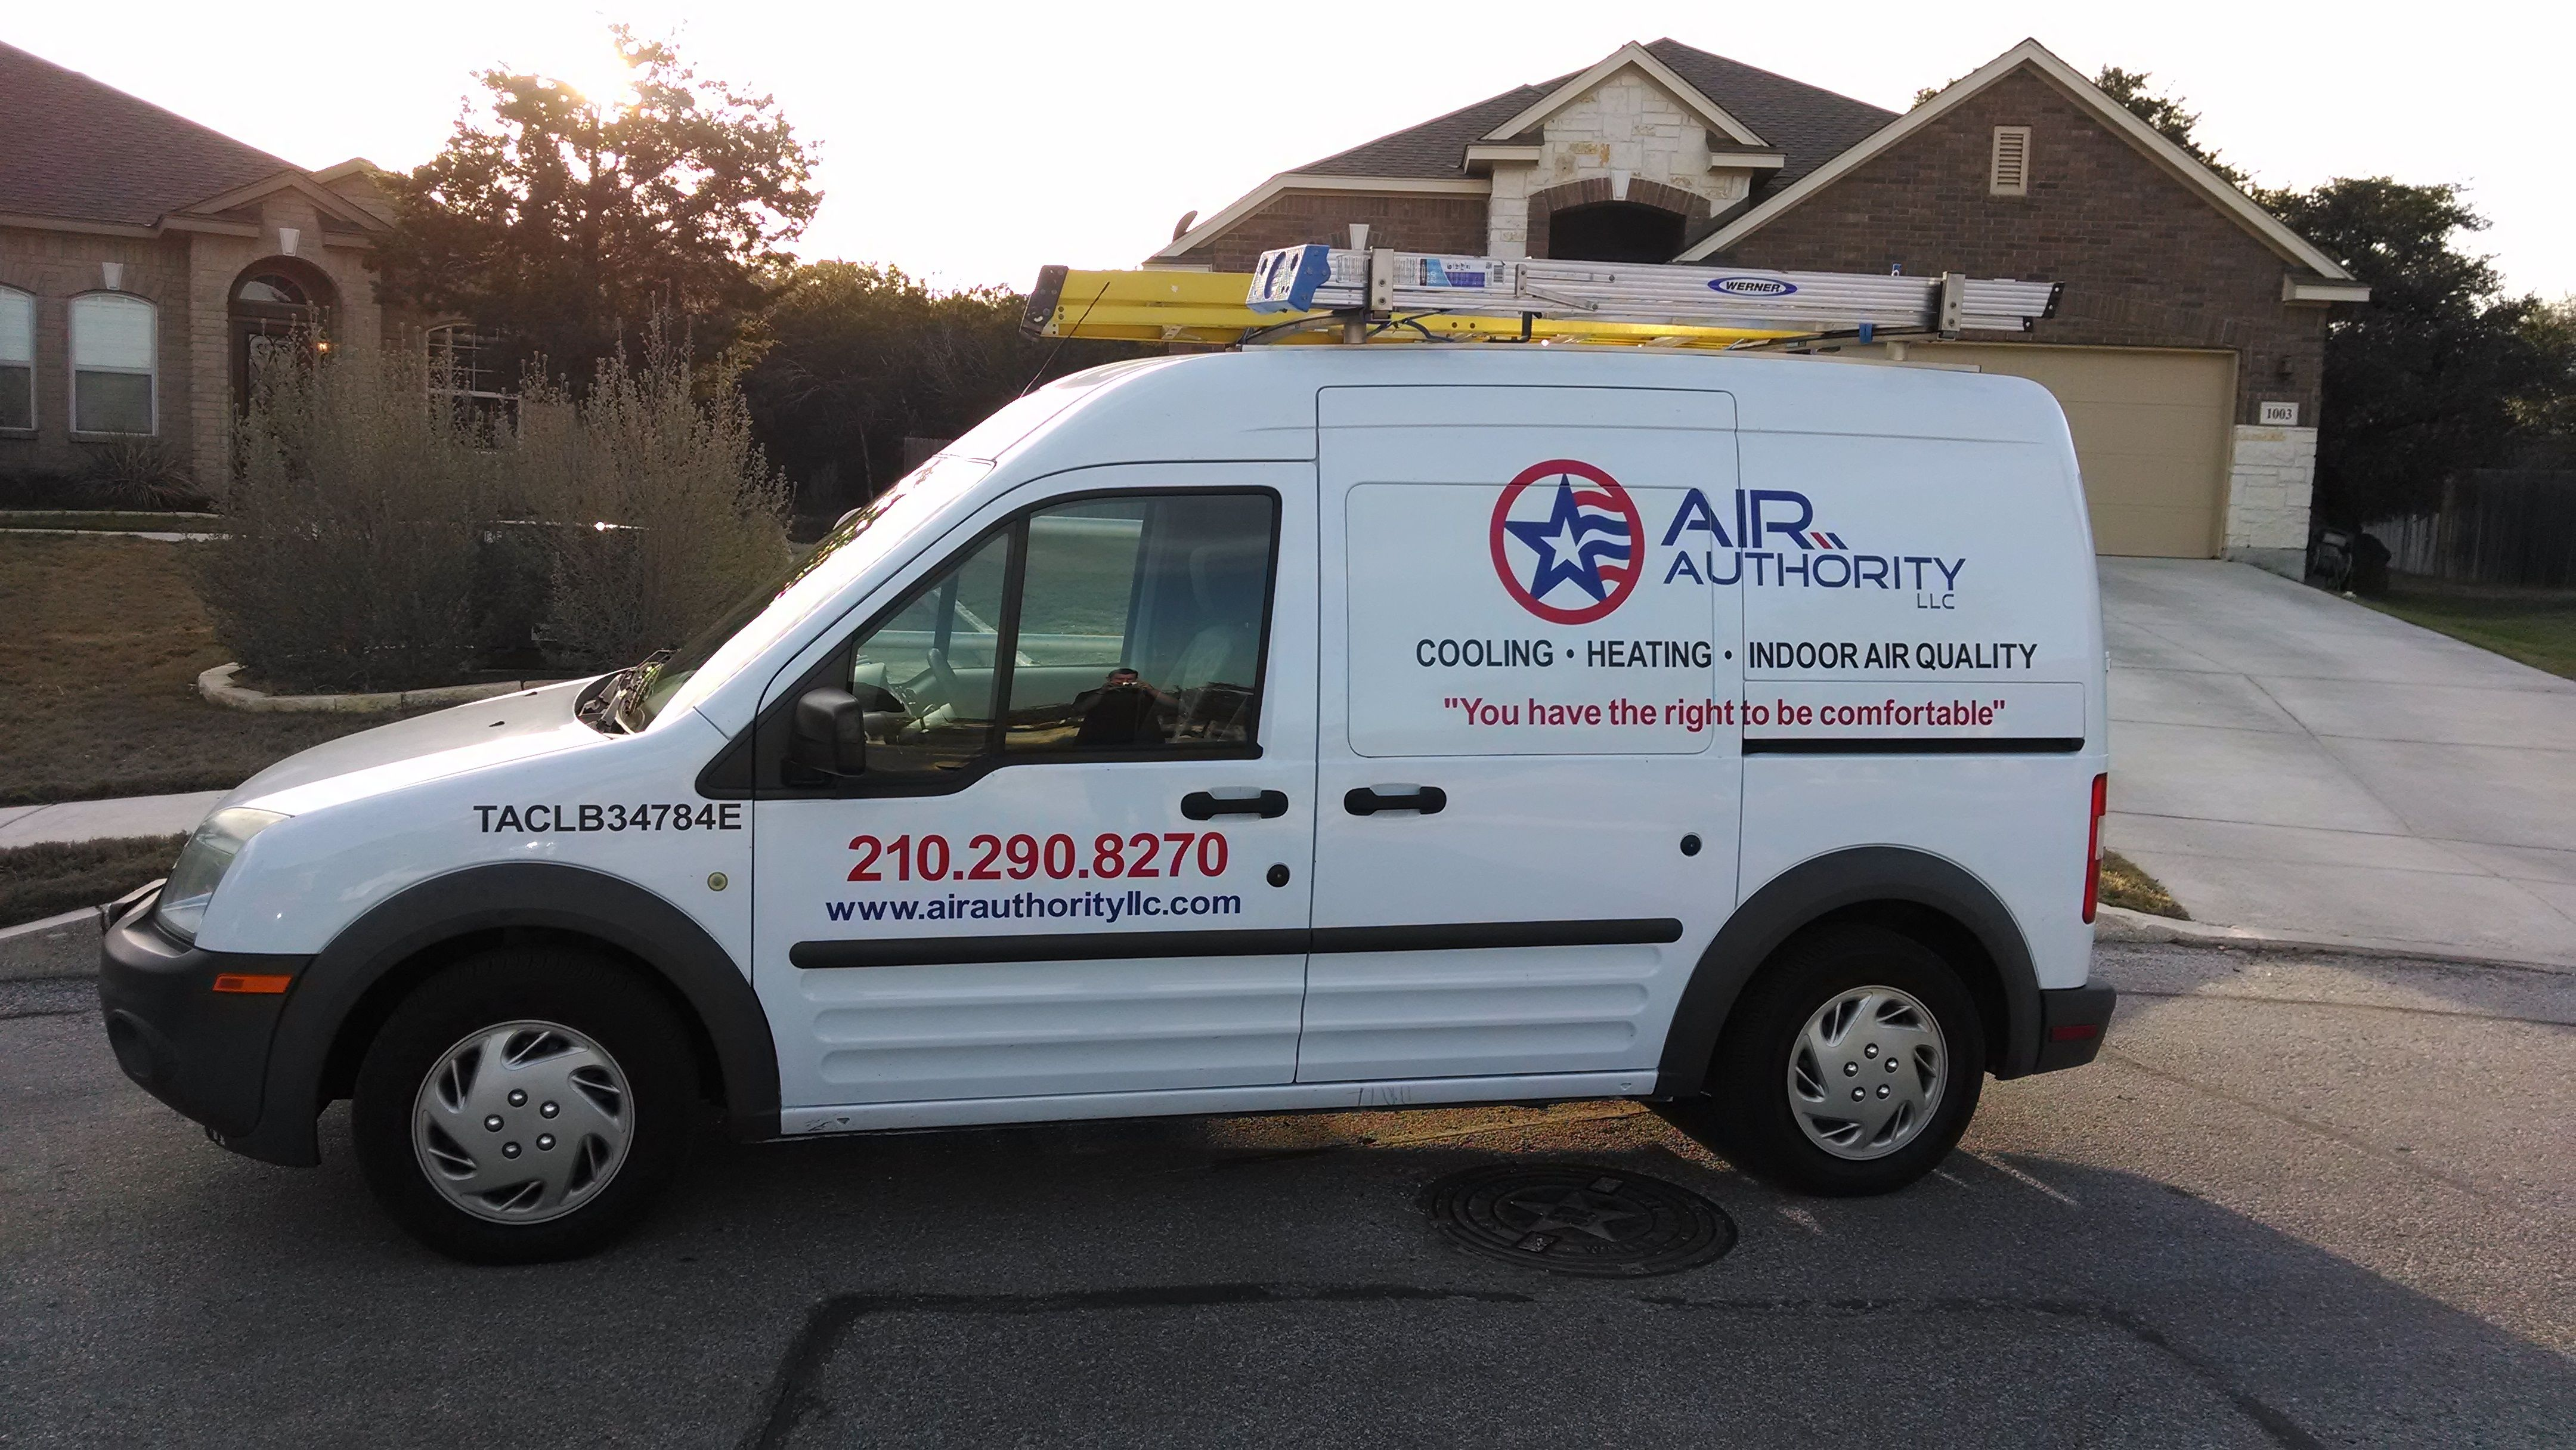 In need of an Air Conditioning repair in San Antonio? You